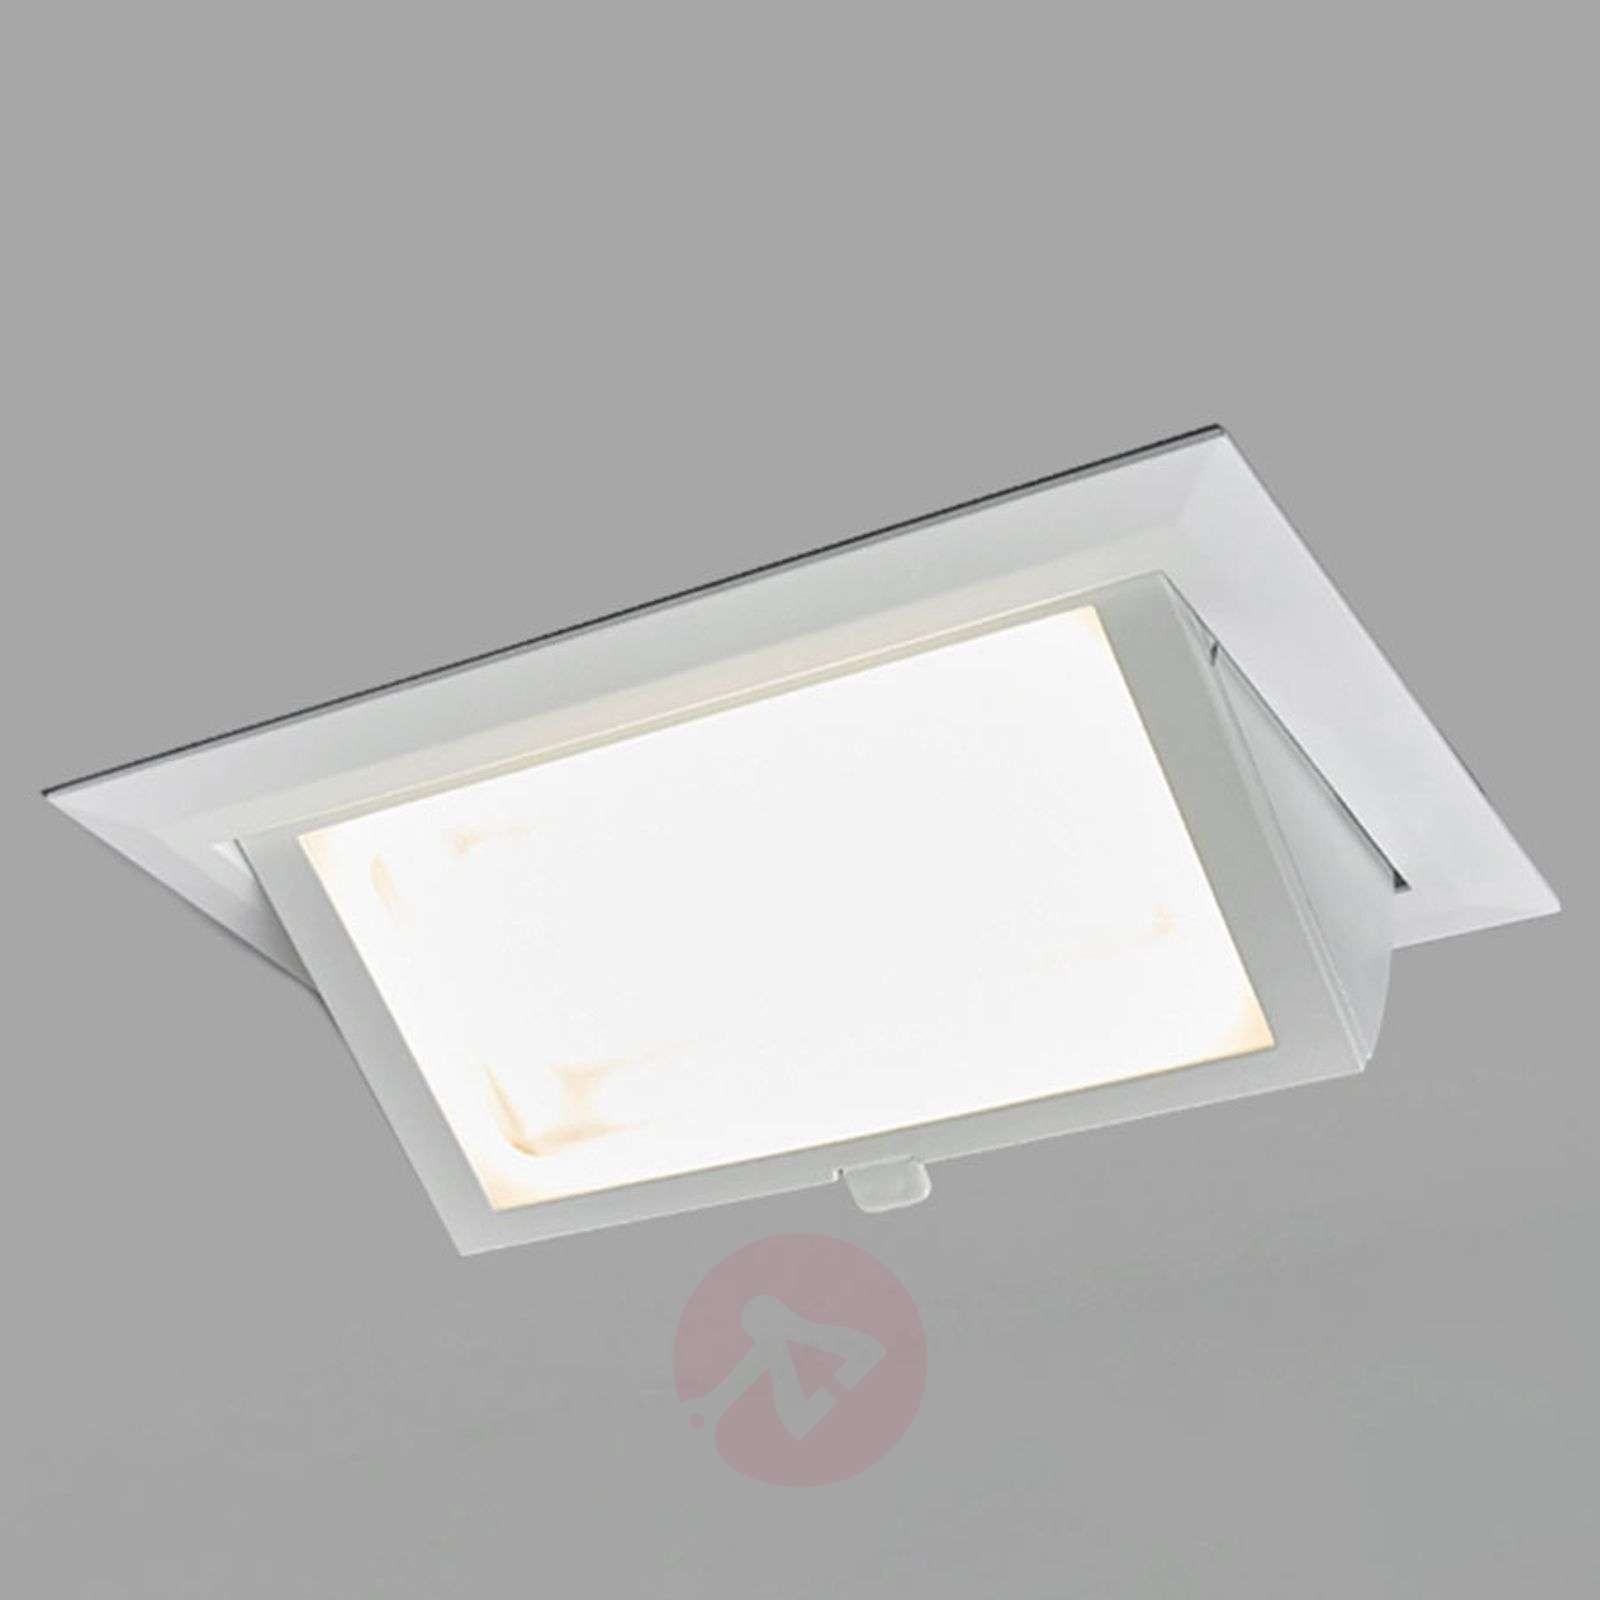 Adnan Adnan Downlight Rectangulaire Downlight Adnan Downlight Led Led Rectangulaire Led Rectangulaire edBxoC